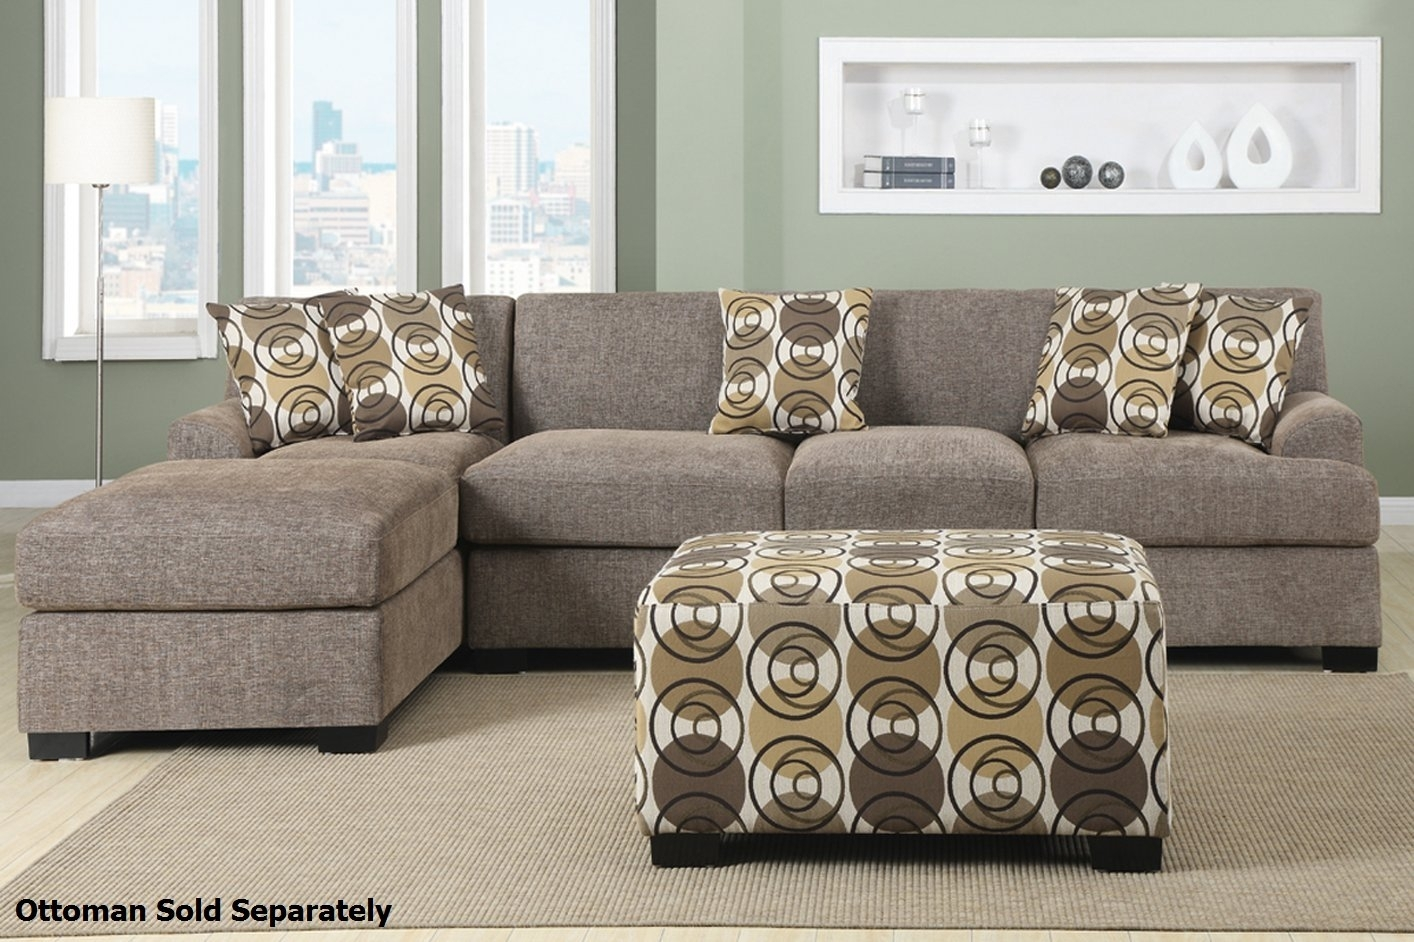 Montreal Iii Beige Fabric Sectional Sofa – Steal A Sofa Furniture Within Beige Sectional Sofas (Image 8 of 10)